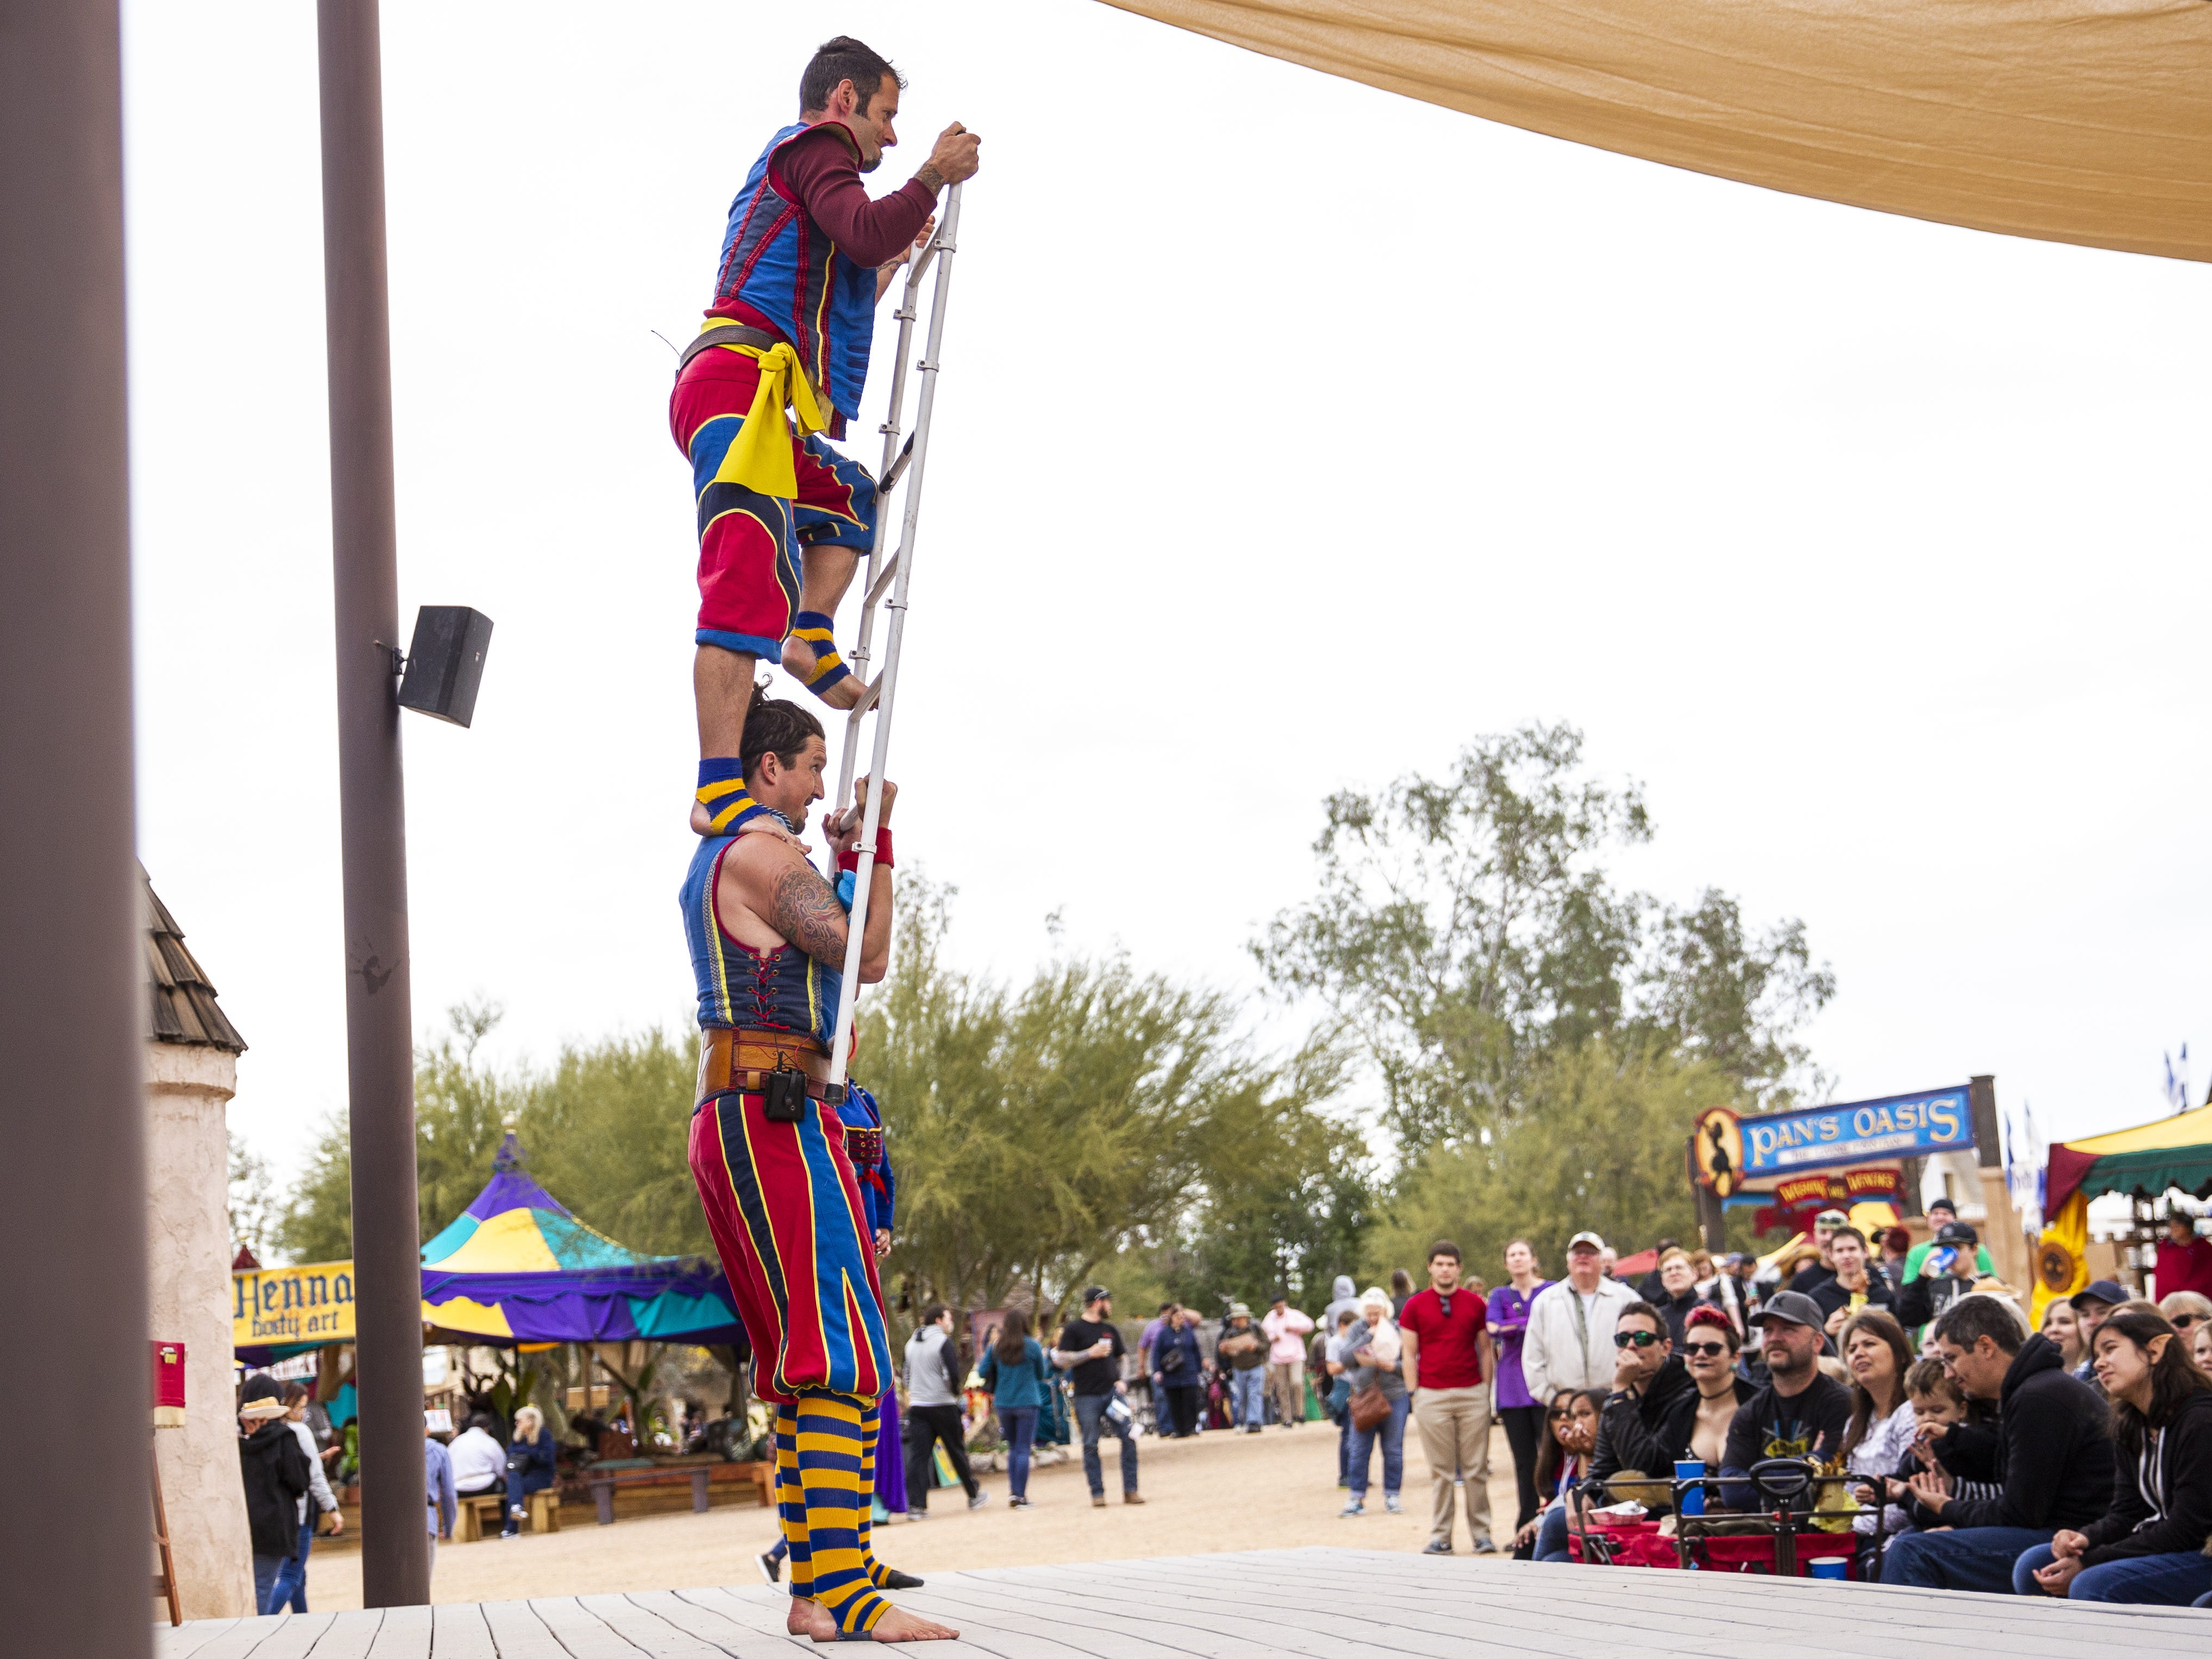 Cameron Tomele climbs a ladder held by James Freer at the Arizona Renaissance Festival 2019 on Feb. 9, 2019 in Gold Canyon, Ariz. Tomele and Freer are members of the comedy circus group Barely Balanced.